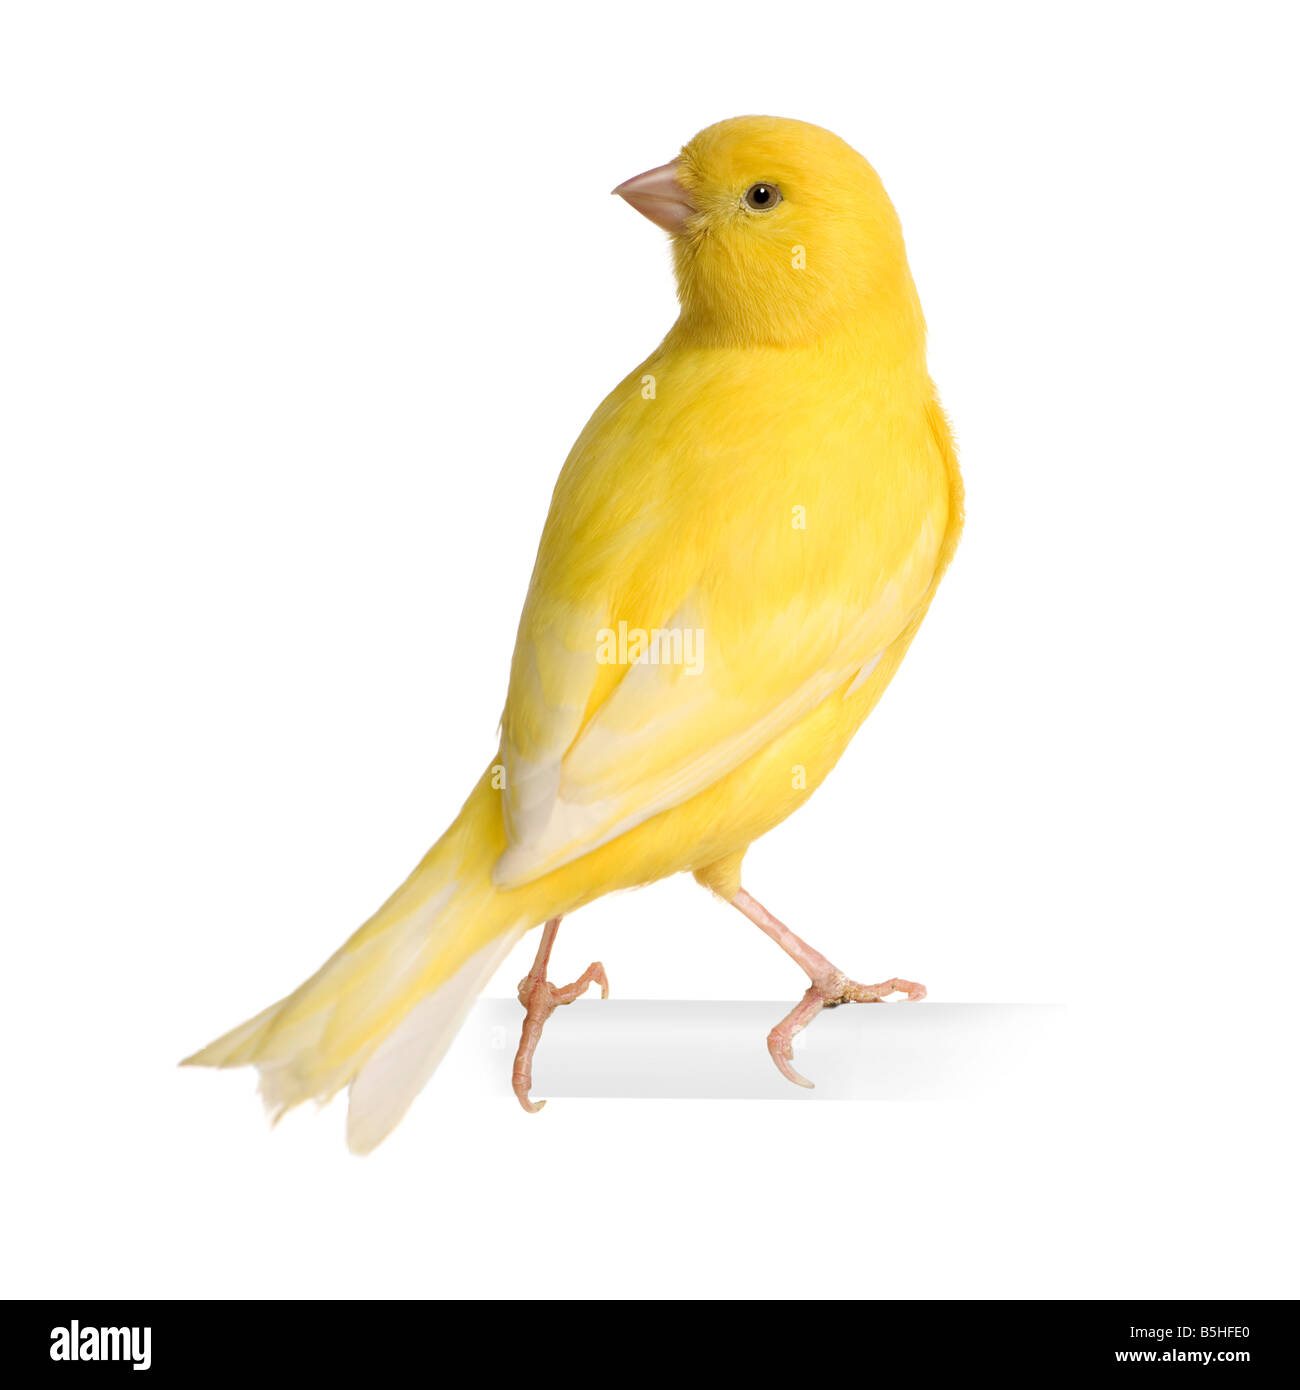 Yellow canary Serinus canaria on its perch in front of a white background - Stock Image